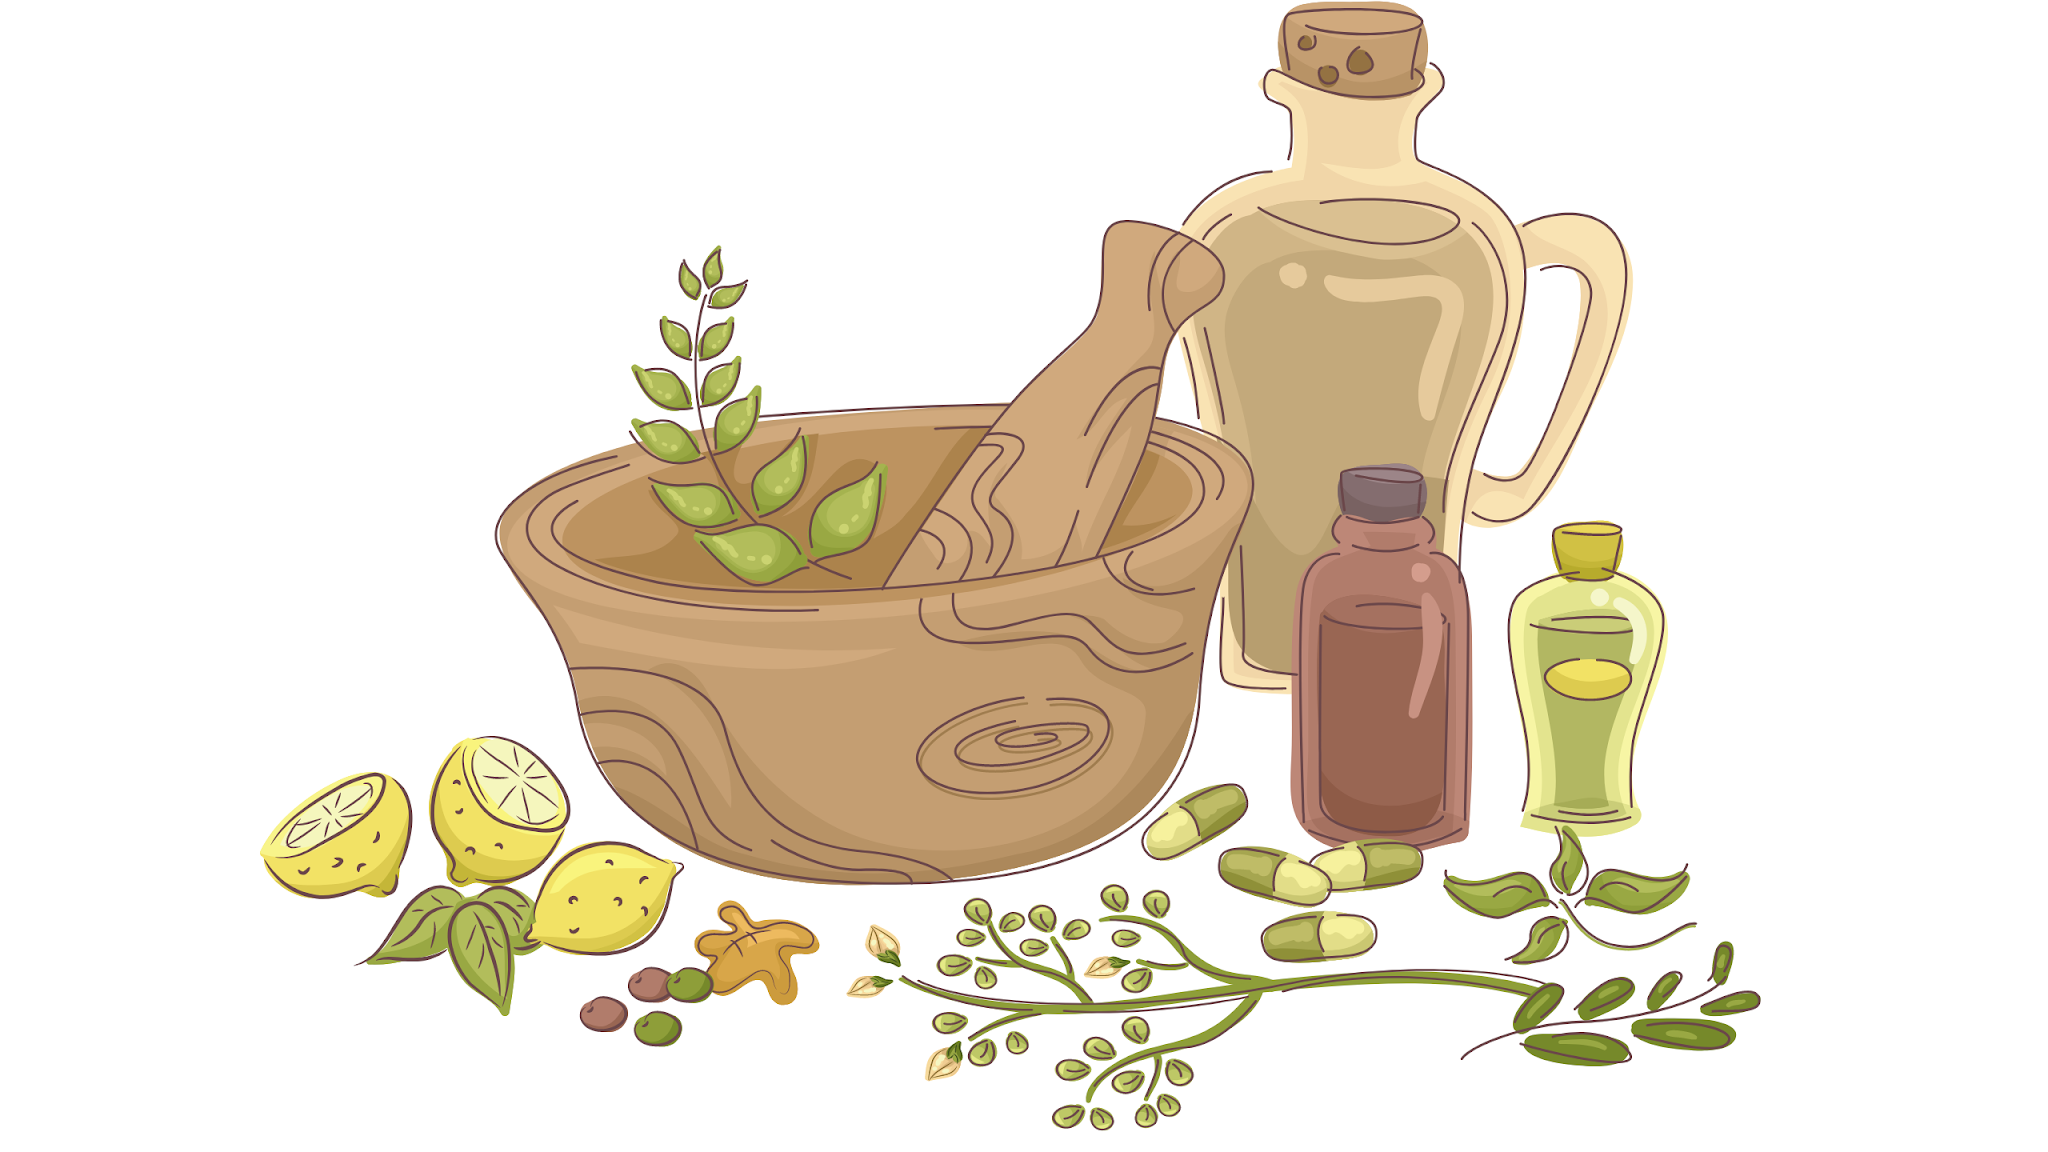 Herbal bowl and stirring spoon illustration, herbal ingredients, herbs and spices, herbal healing, herbalism